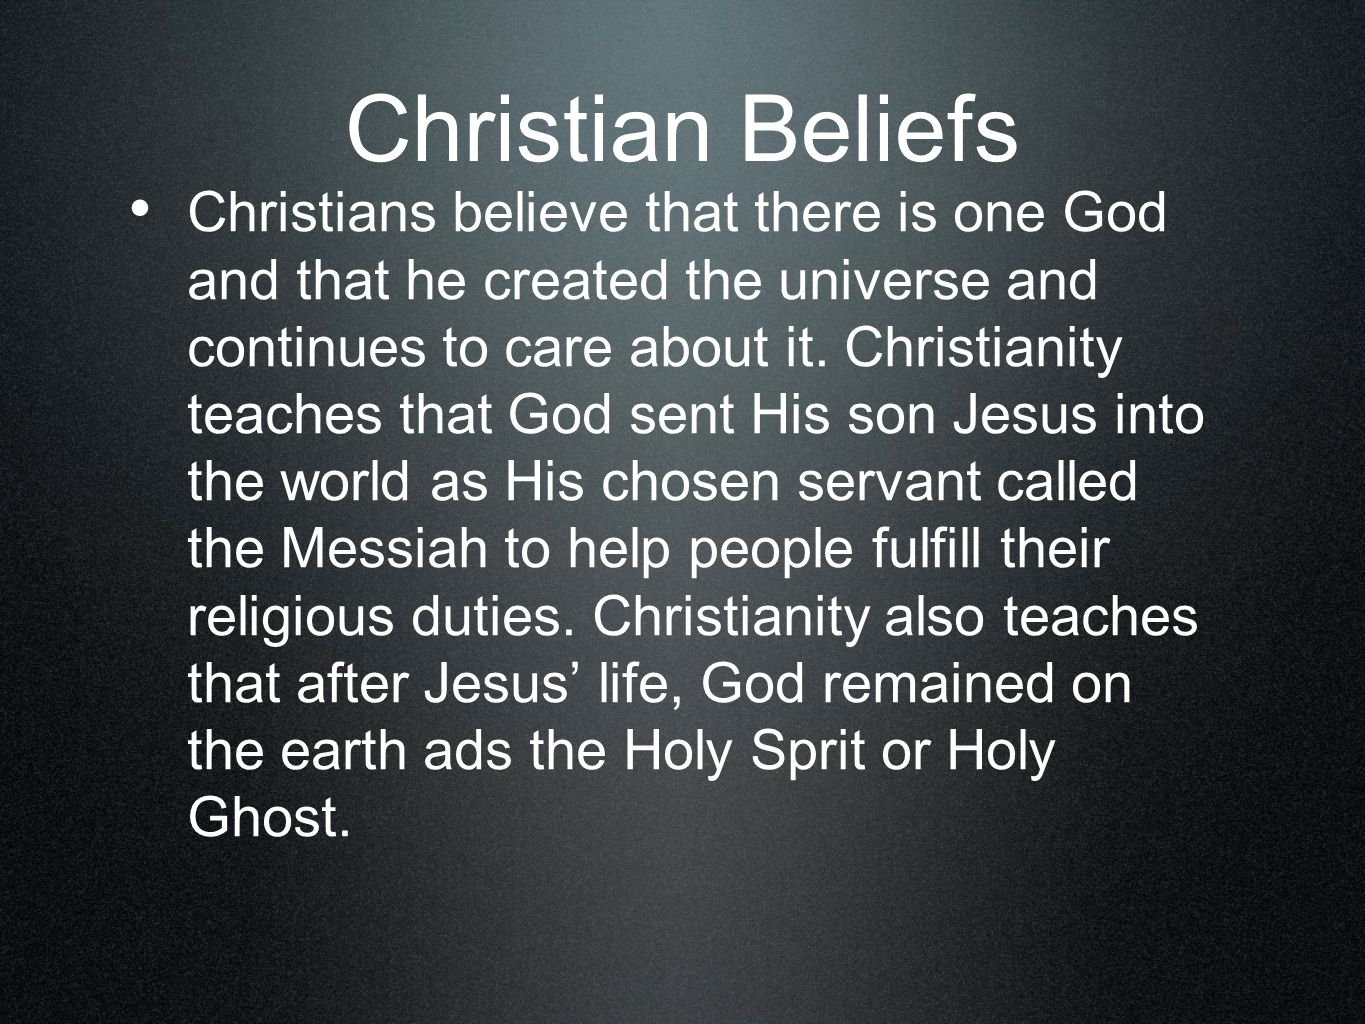 an analysis of the responsibility of the christians on earth The eternal responsibility of a christian for our lives on earth  believers have not only the motivation but also eternal responsibilities for our lives here on earth  heaven on earth .